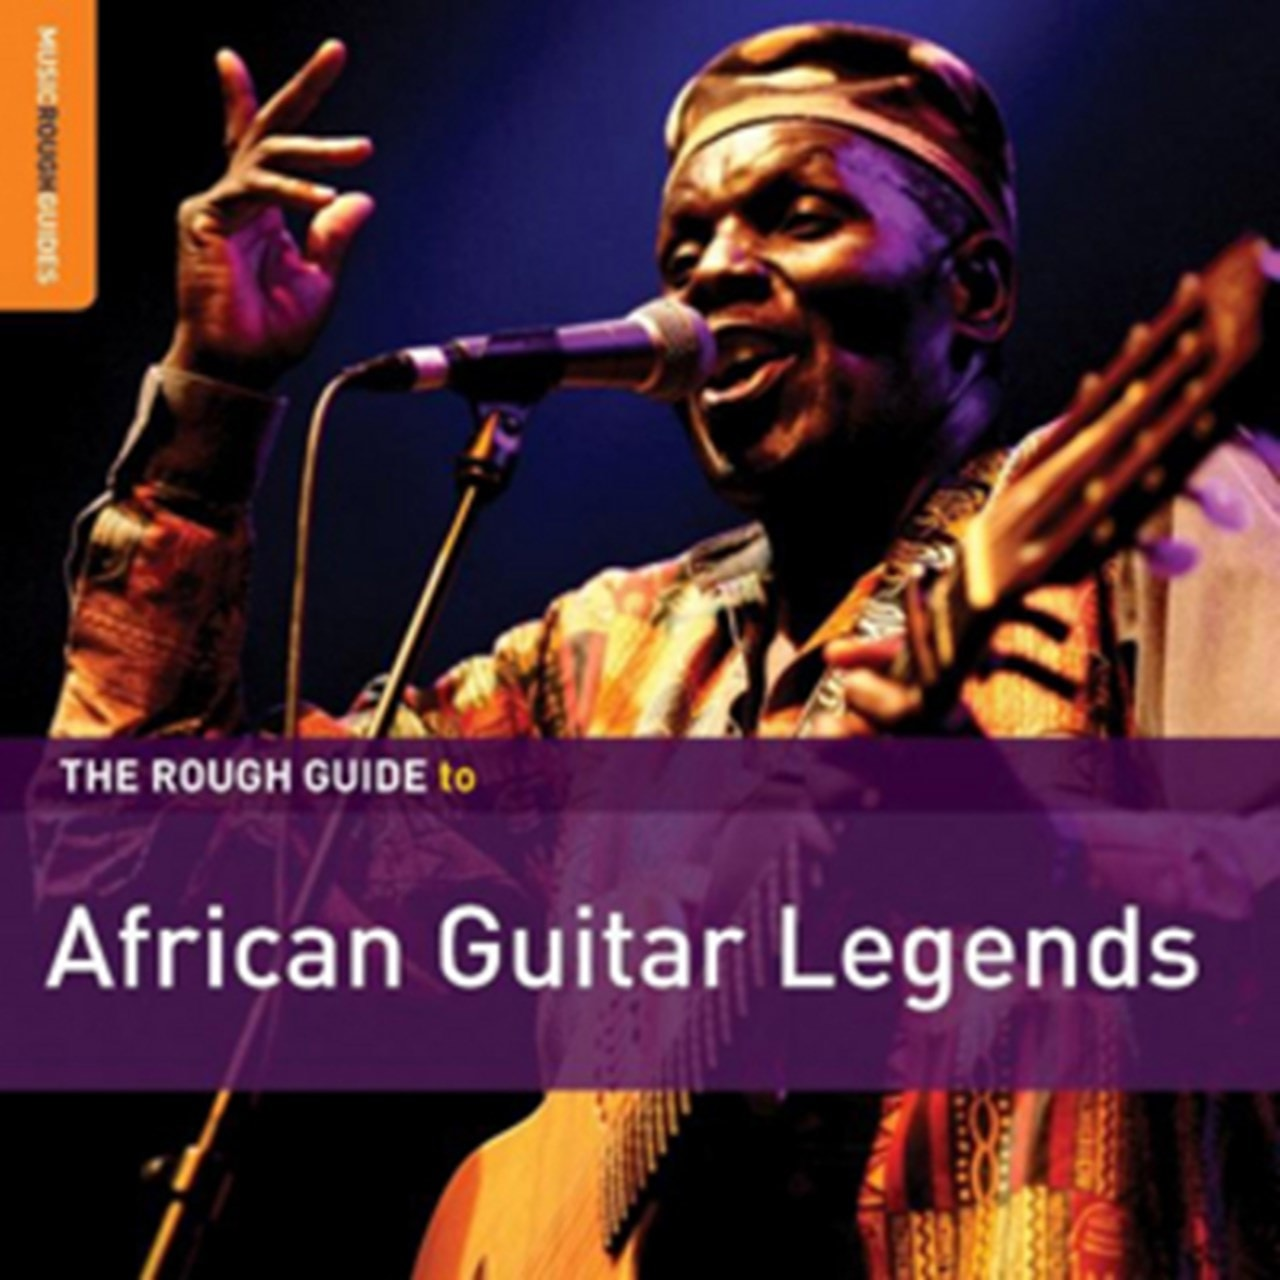 The Rough Guide to African Guitar Legends - 1